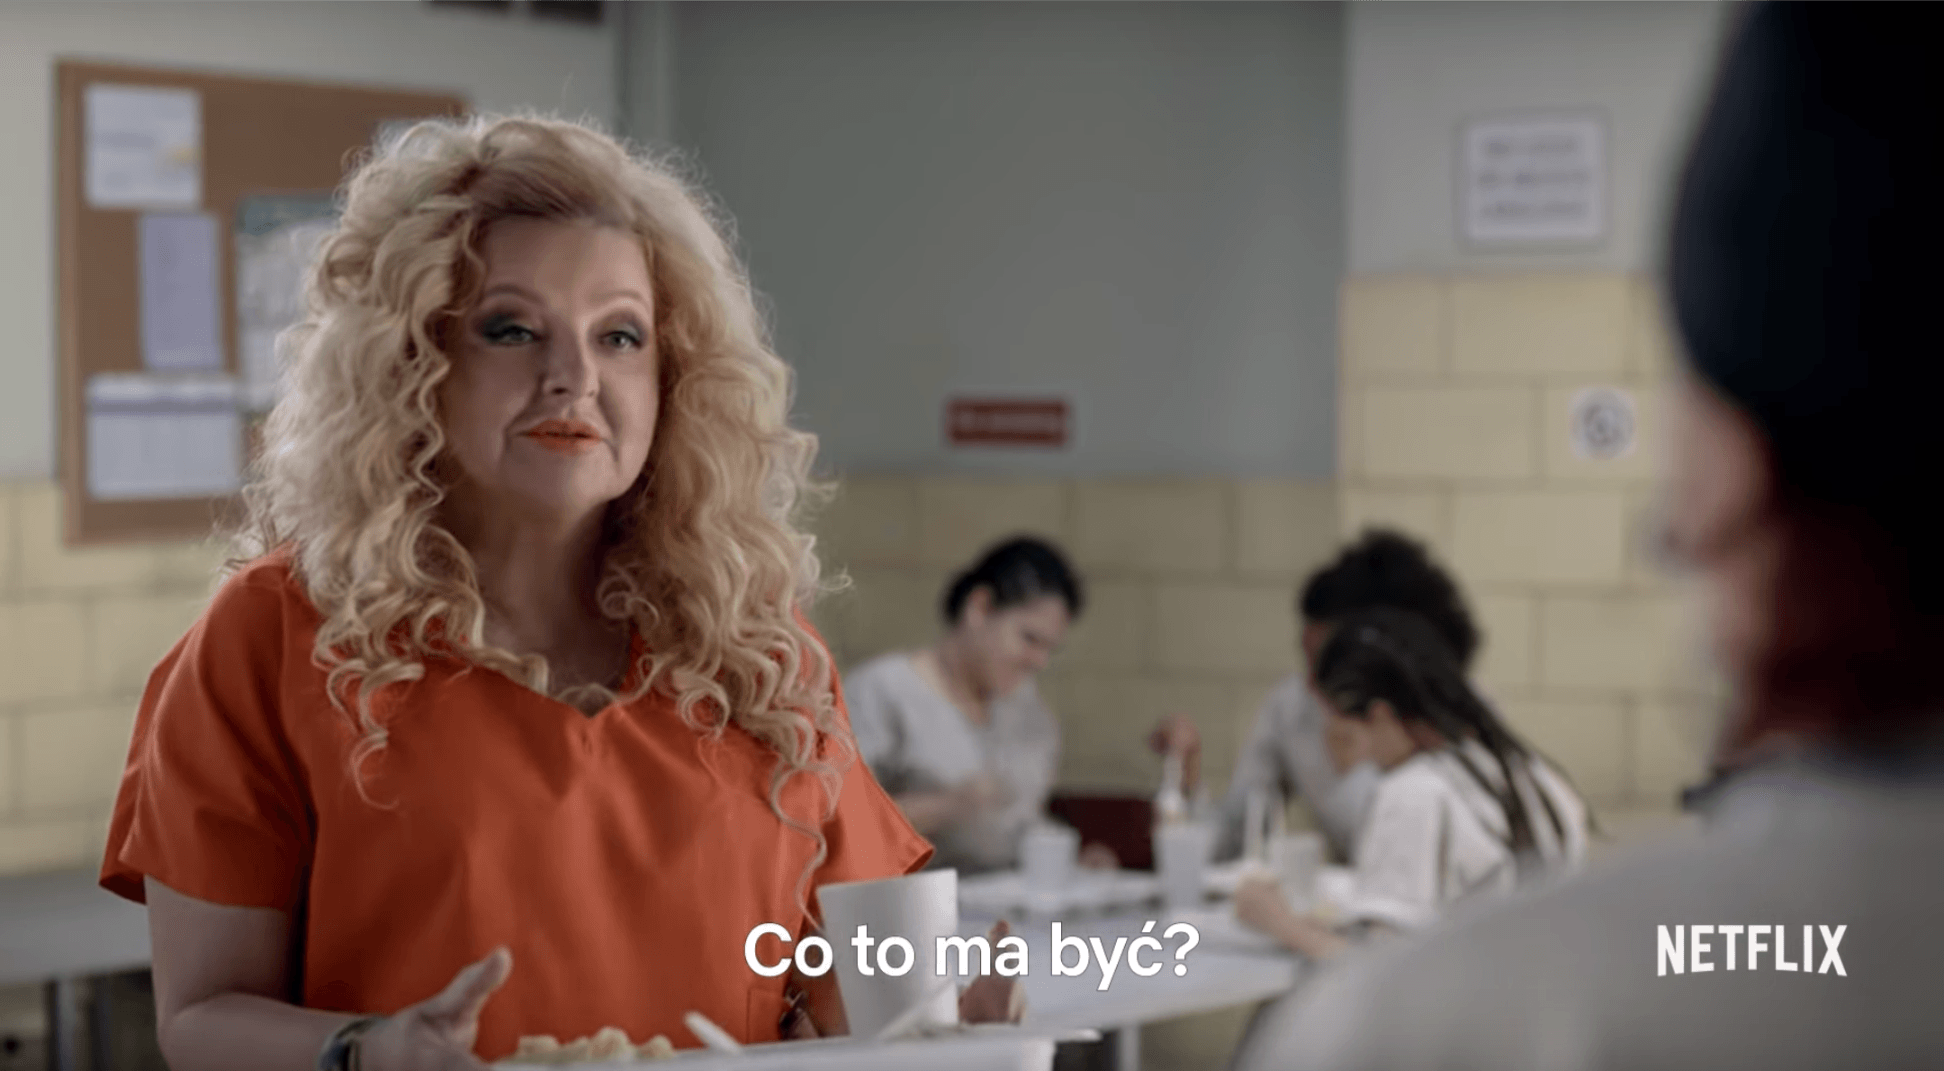 Tabletowo.pl Pyszny zwiastun 6. sezonu Orange is the New Black - Magda Gessler przeprowadza więzienne rewolucje Kultura Nowości Zapowiedzi